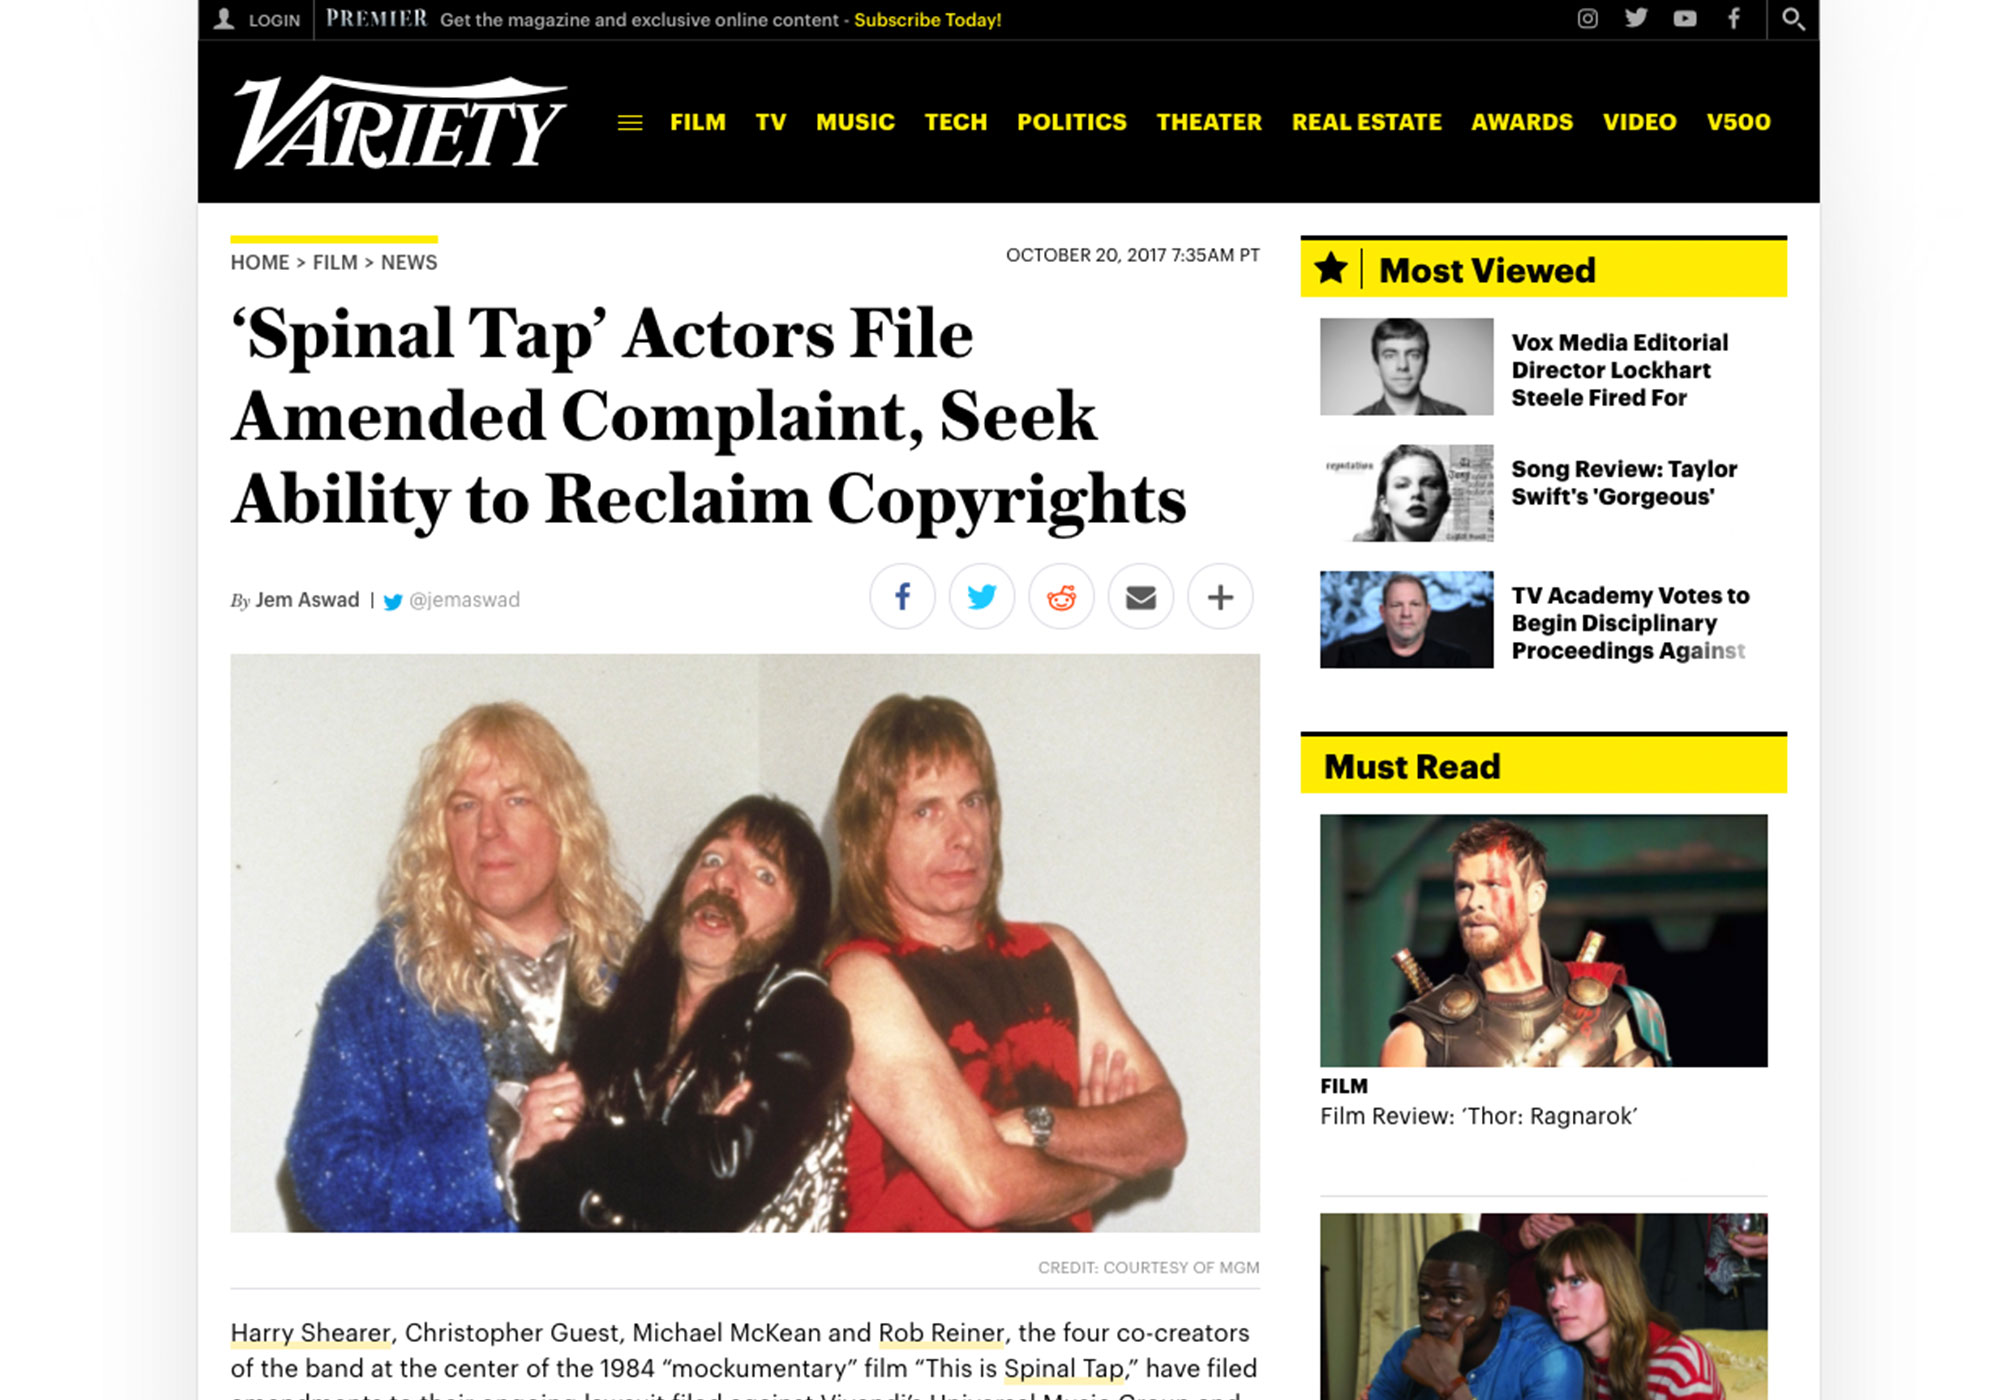 Fairness Rocks News 'Spinal Tap' Actors File Amended Complaint, Seek Ability to Reclaim Copyrights